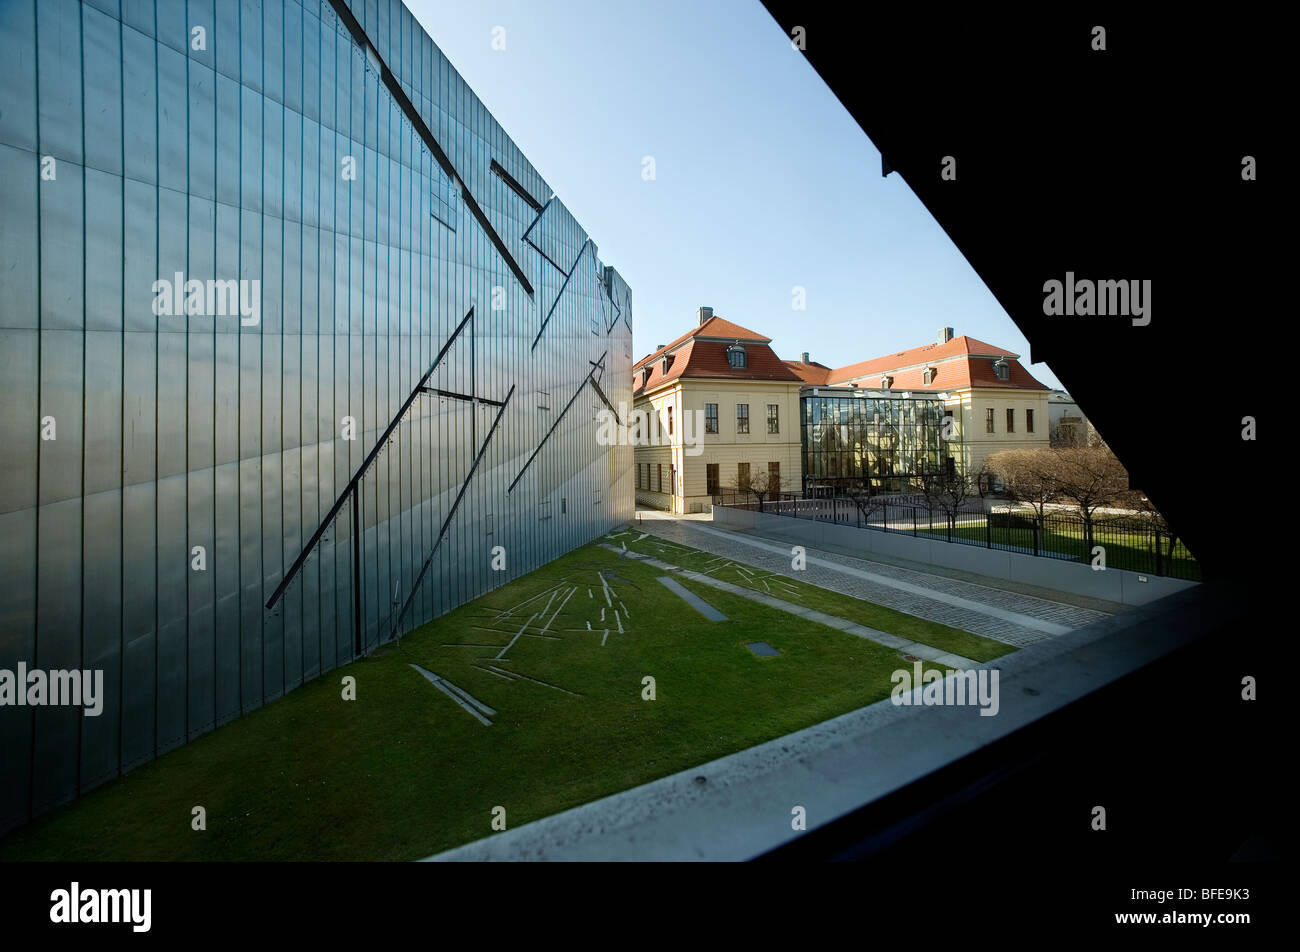 Berlin 2009,Jewish Museum,1989 DDR Germany Unified positive forward history War Cold War end East West Divide city - Stock Image